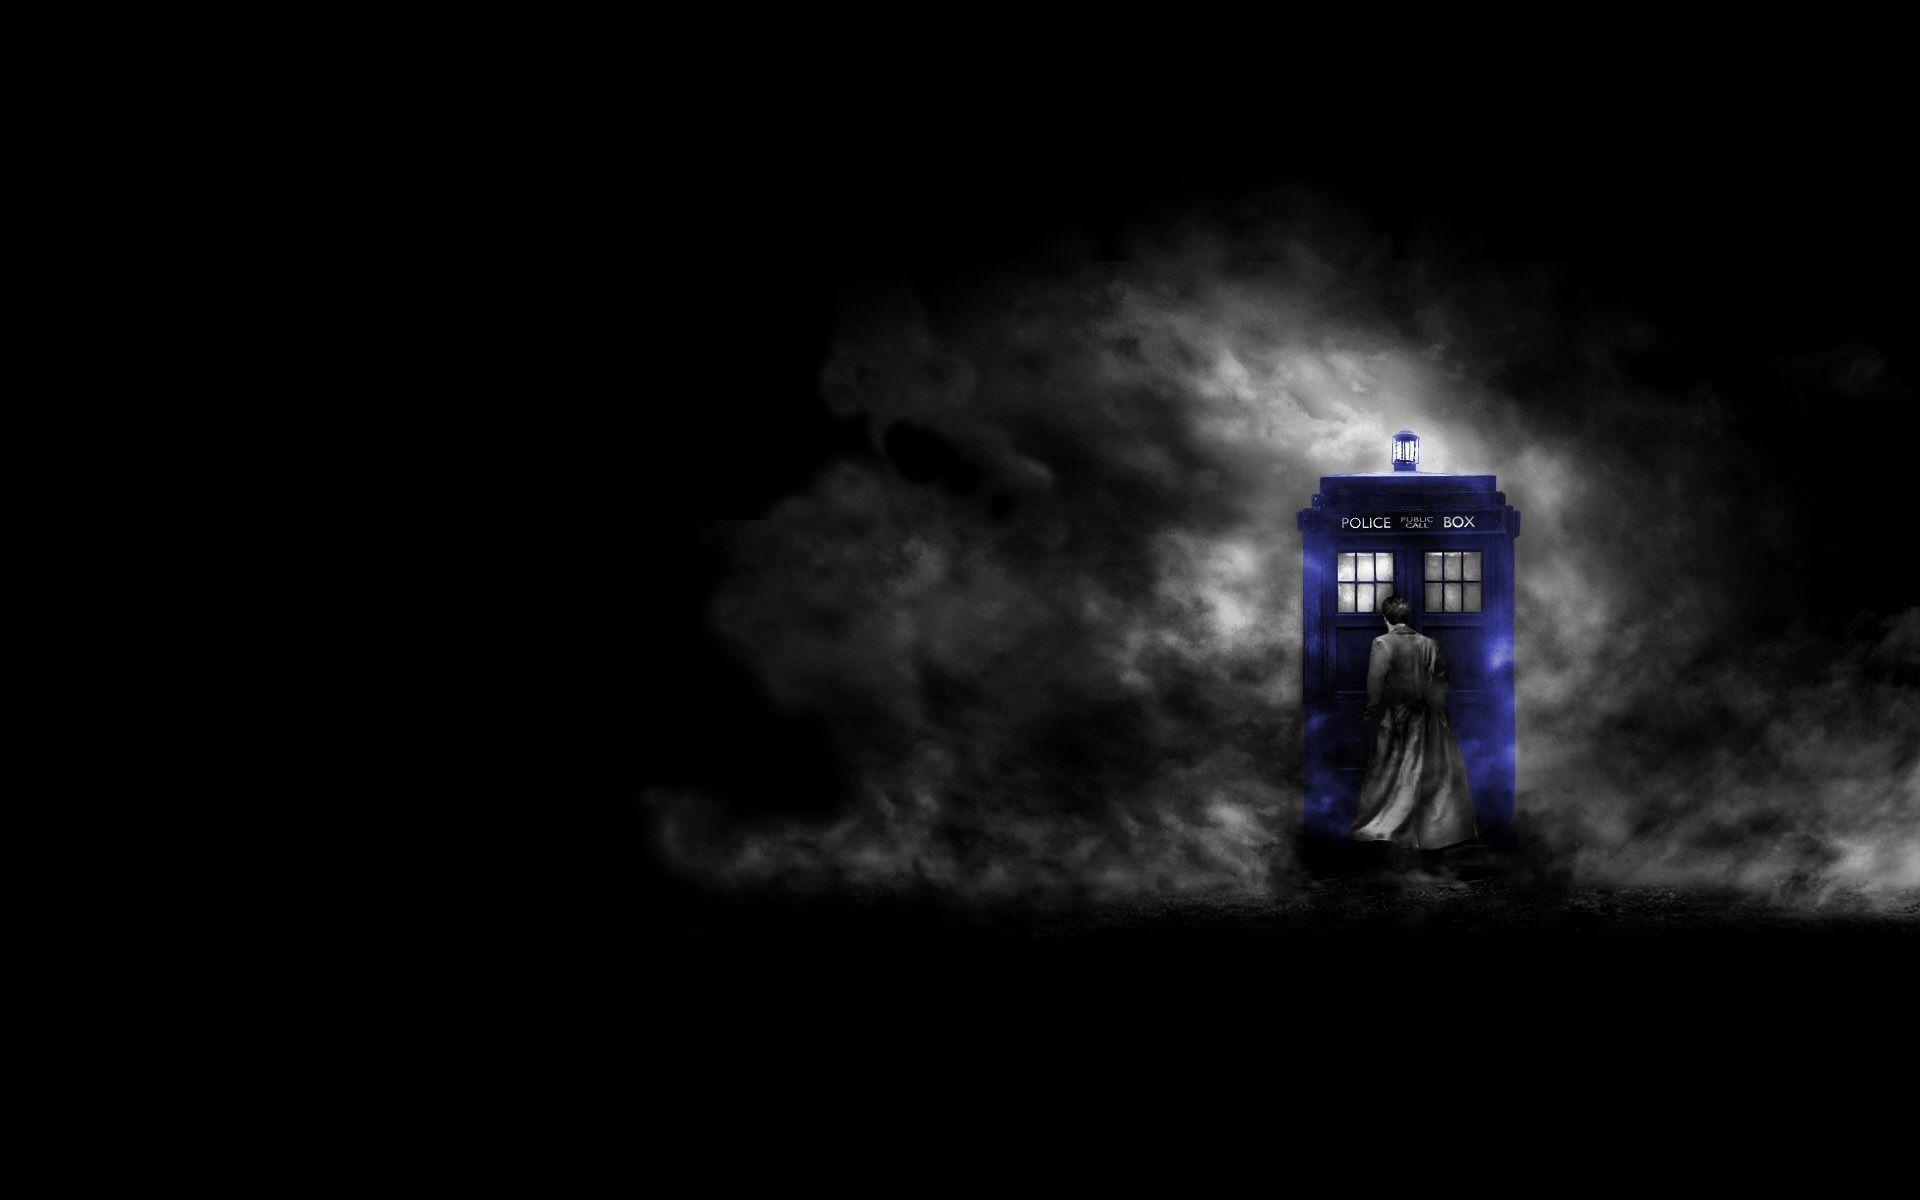 doctor who hd wallpapers - wallpaper cave